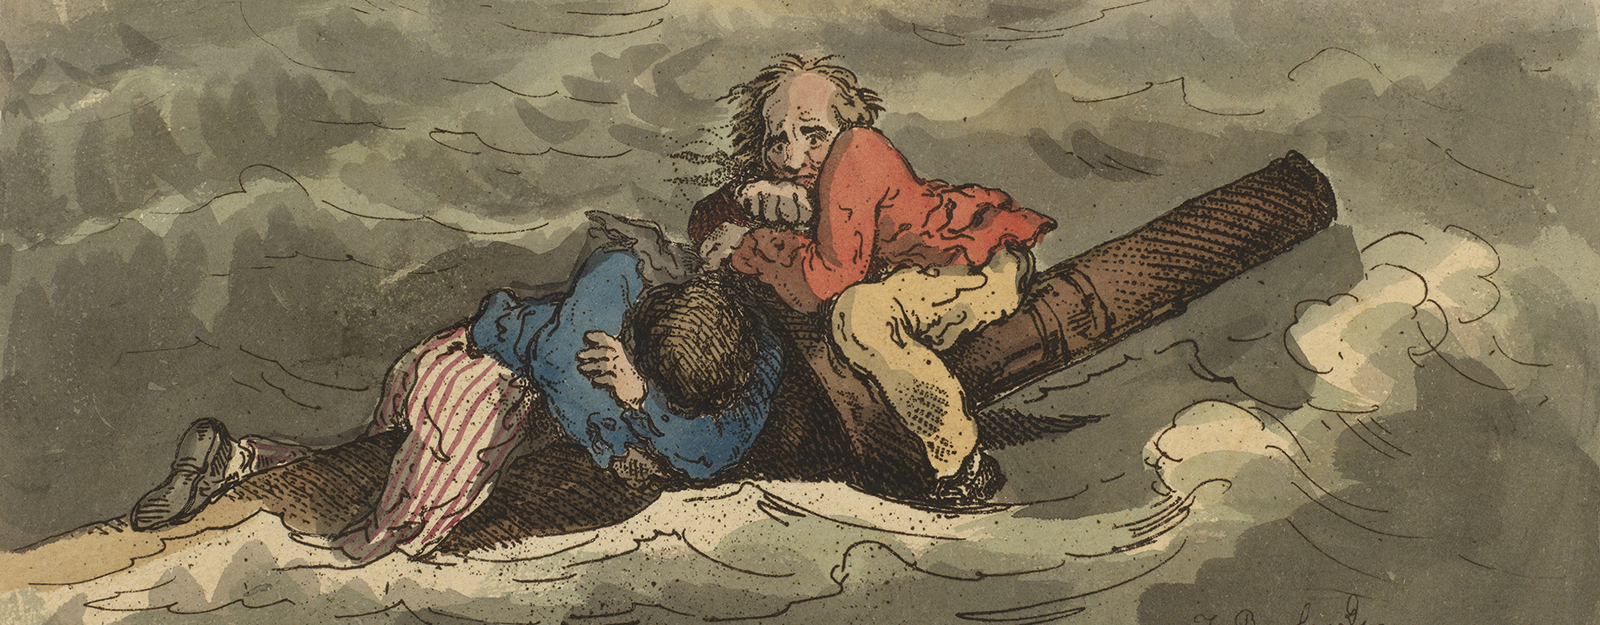 Misery, Thomas Rowlandson